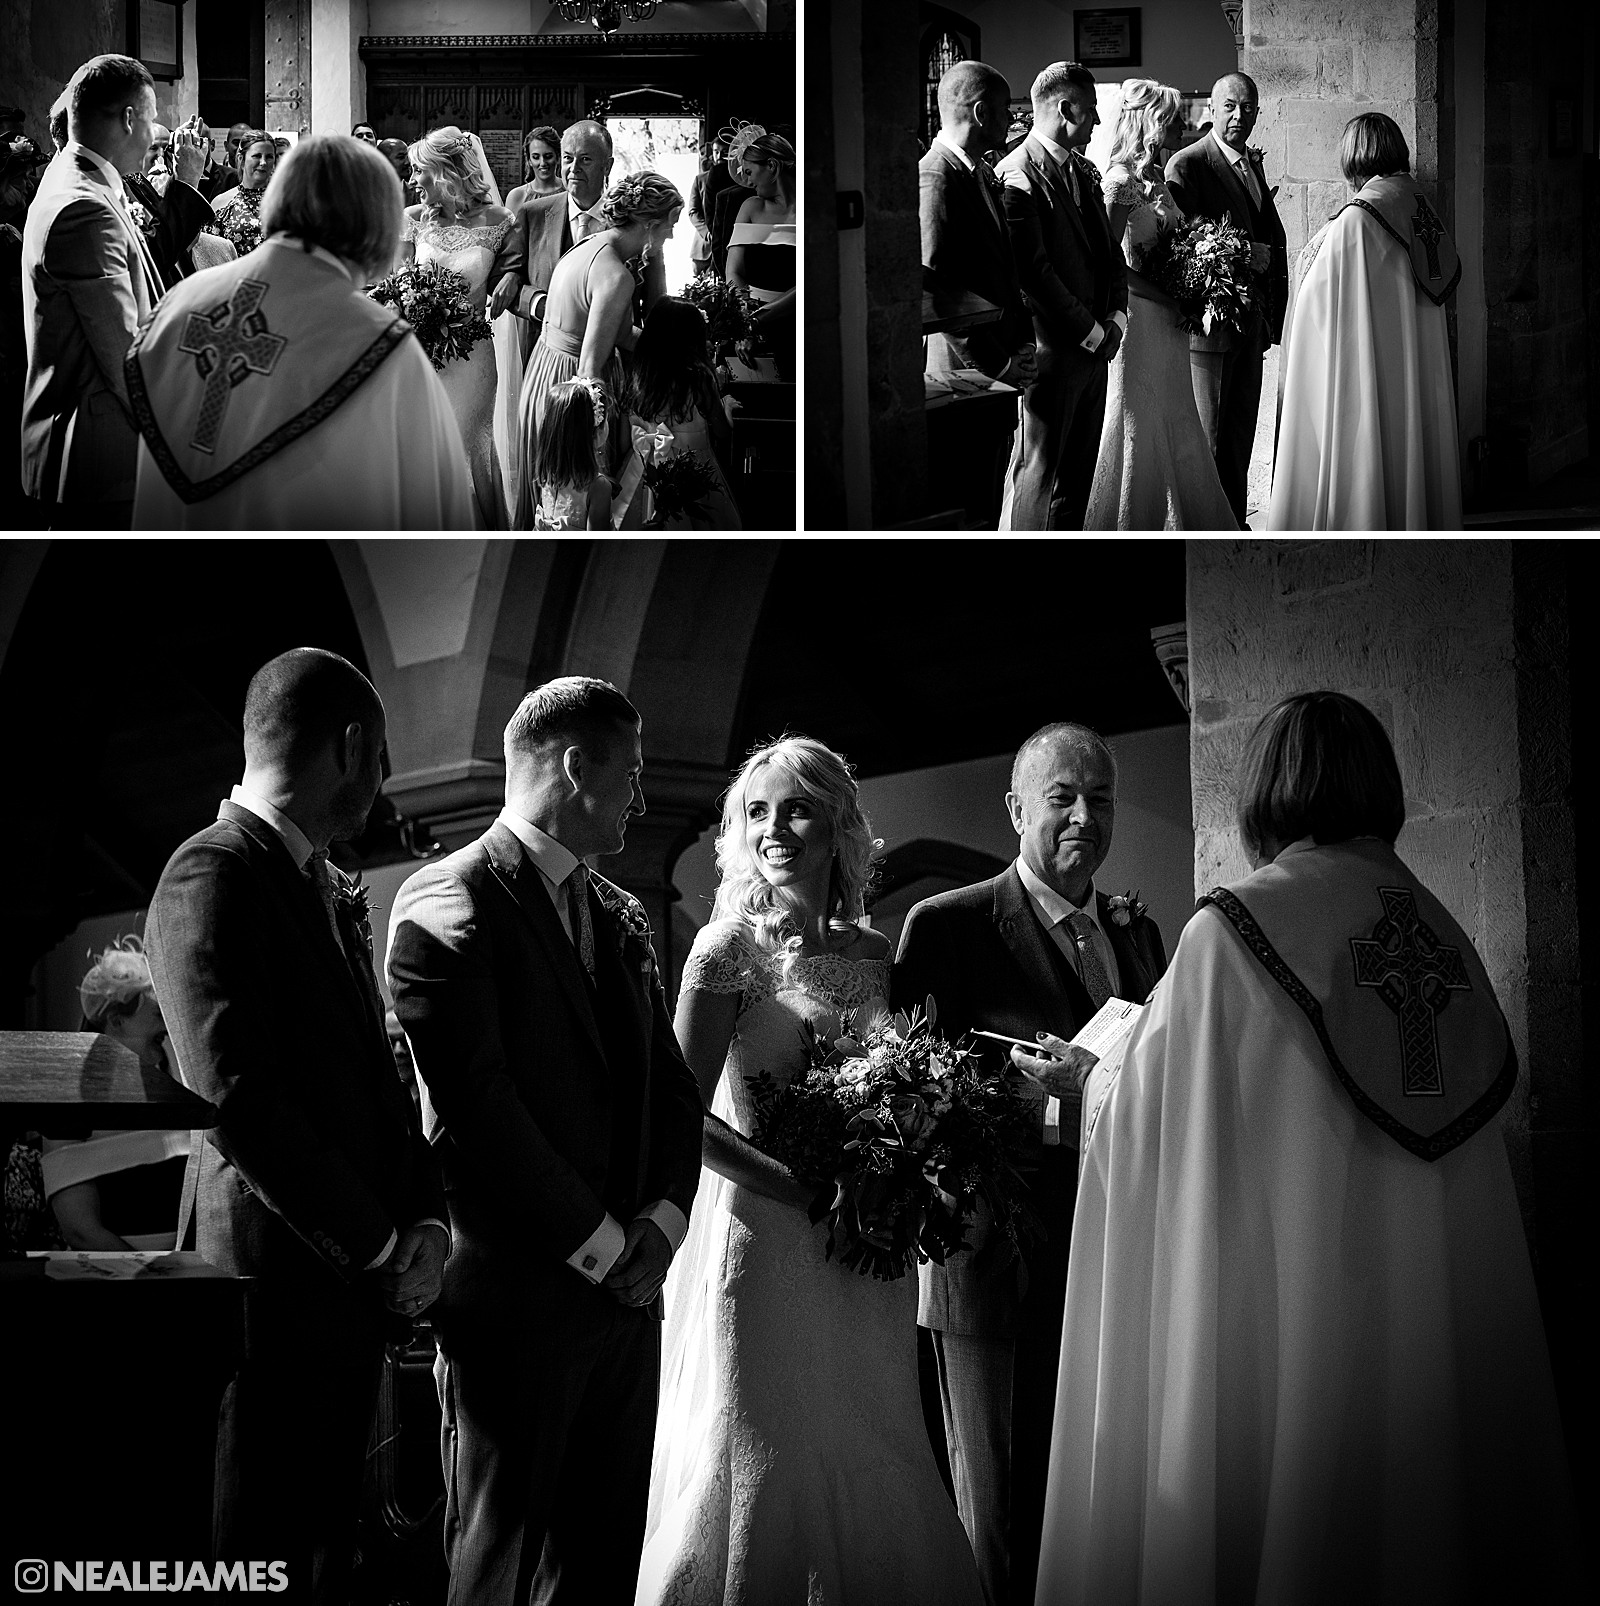 A black and white contrasty image of a bride and groom exchanging vows in an English church